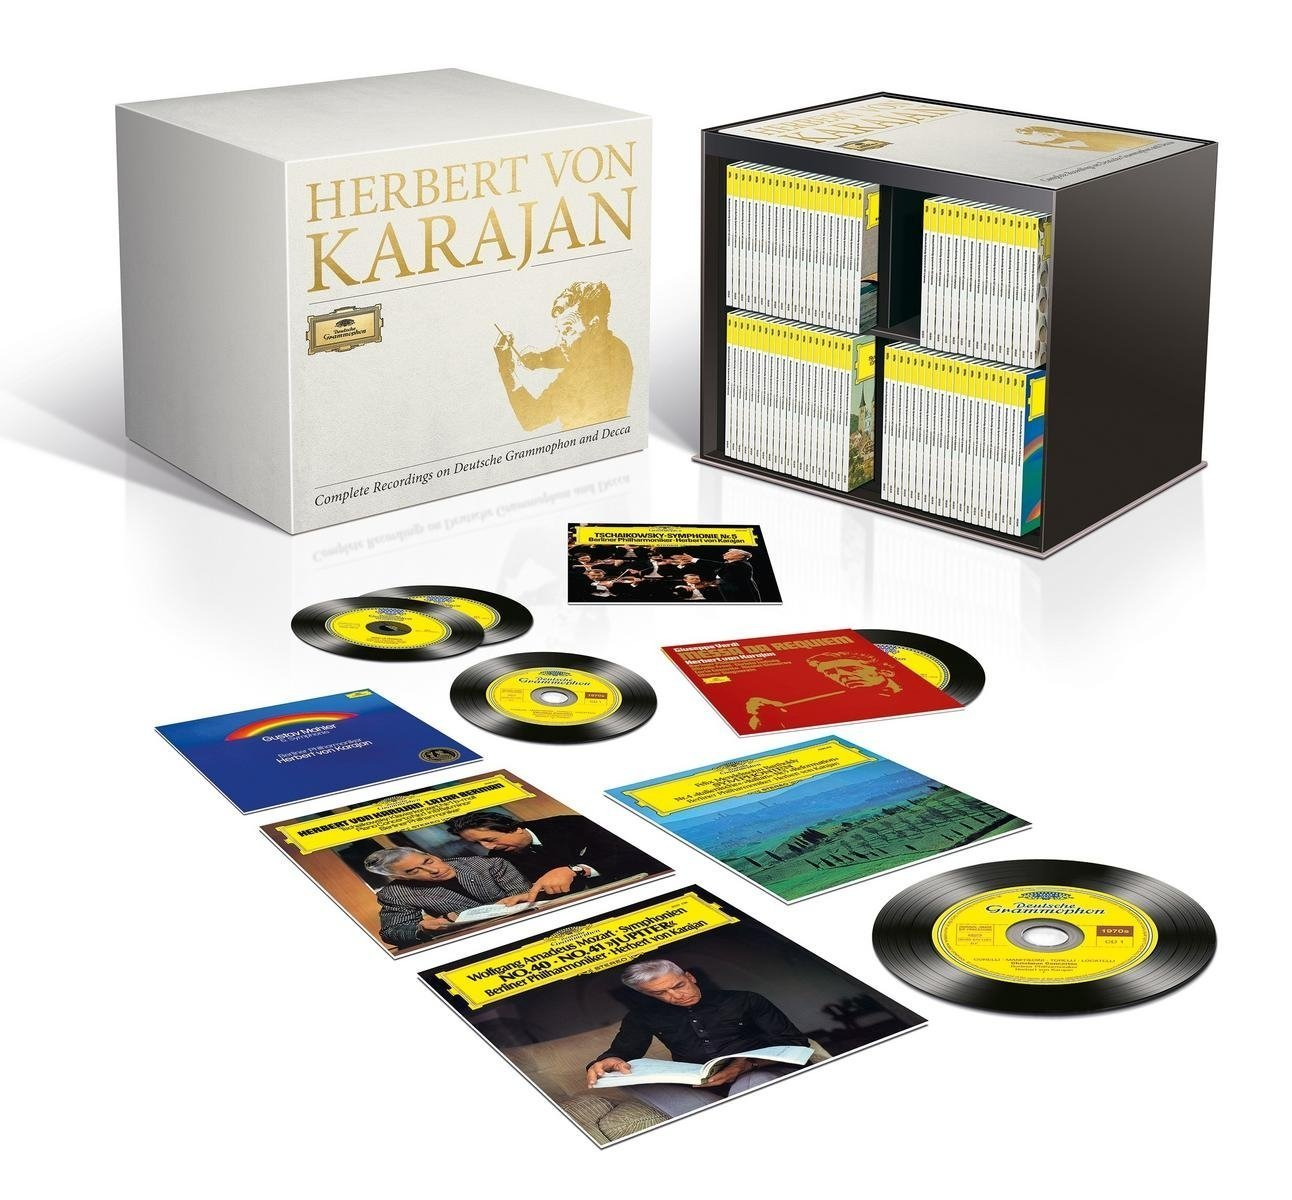 The Complete Recordings on DG & DECCA Box set - Katyanのオーディオ・ビジュアル・ルーム